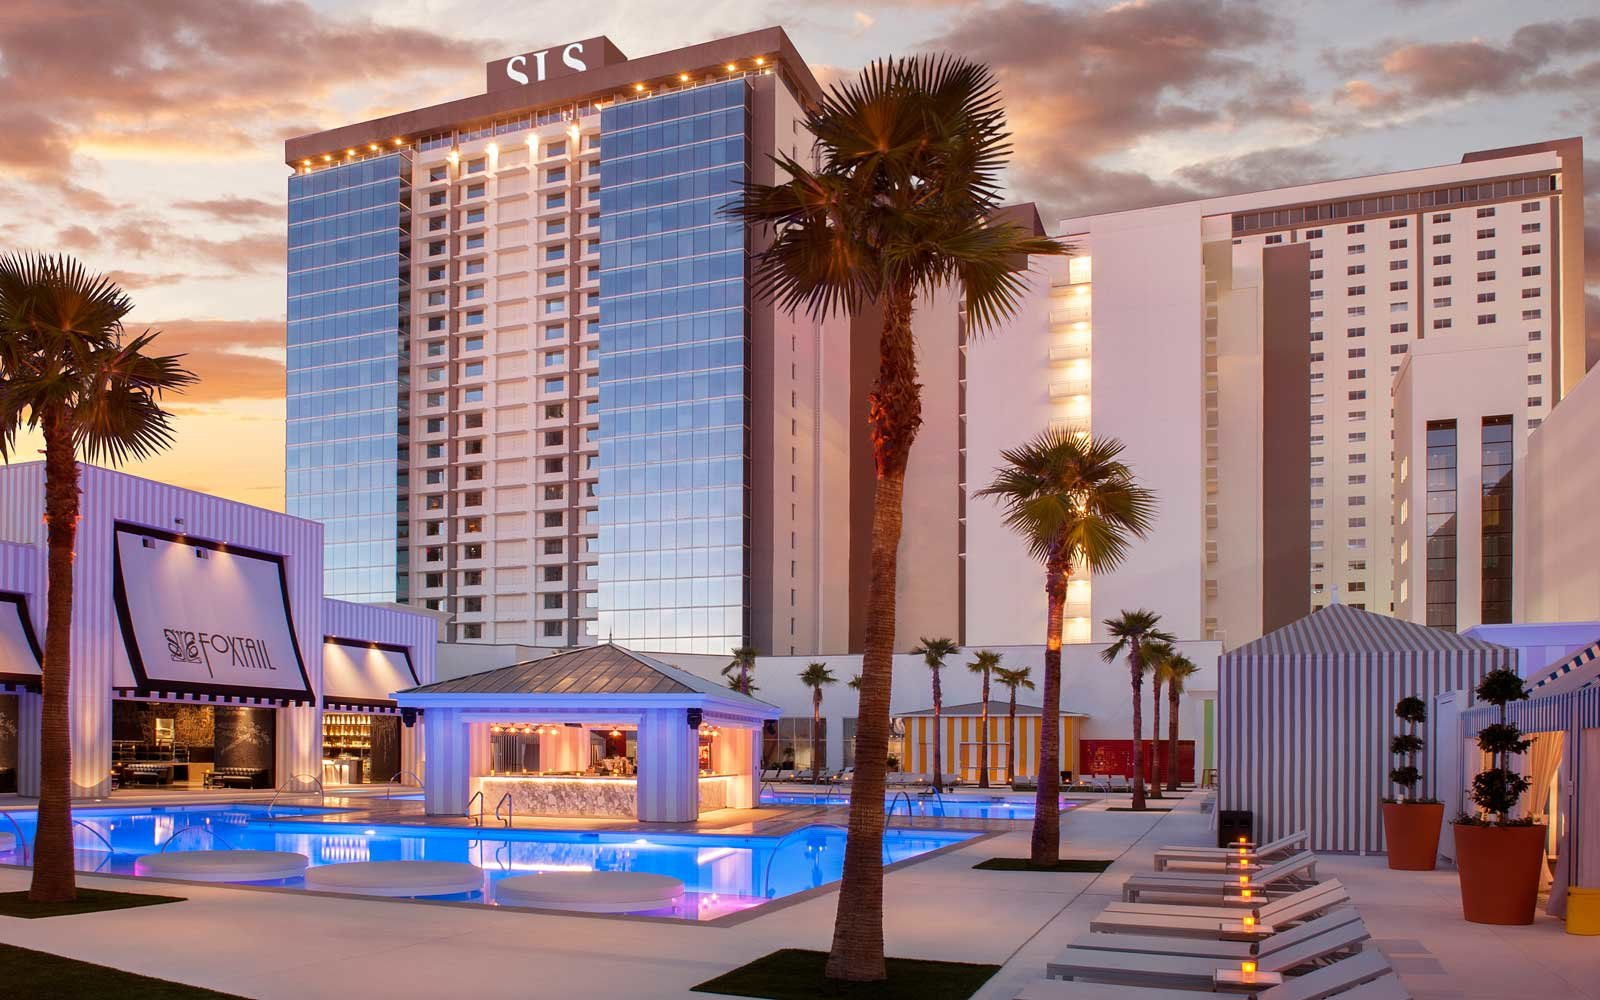 SLS hotel on the Las Vegas strip